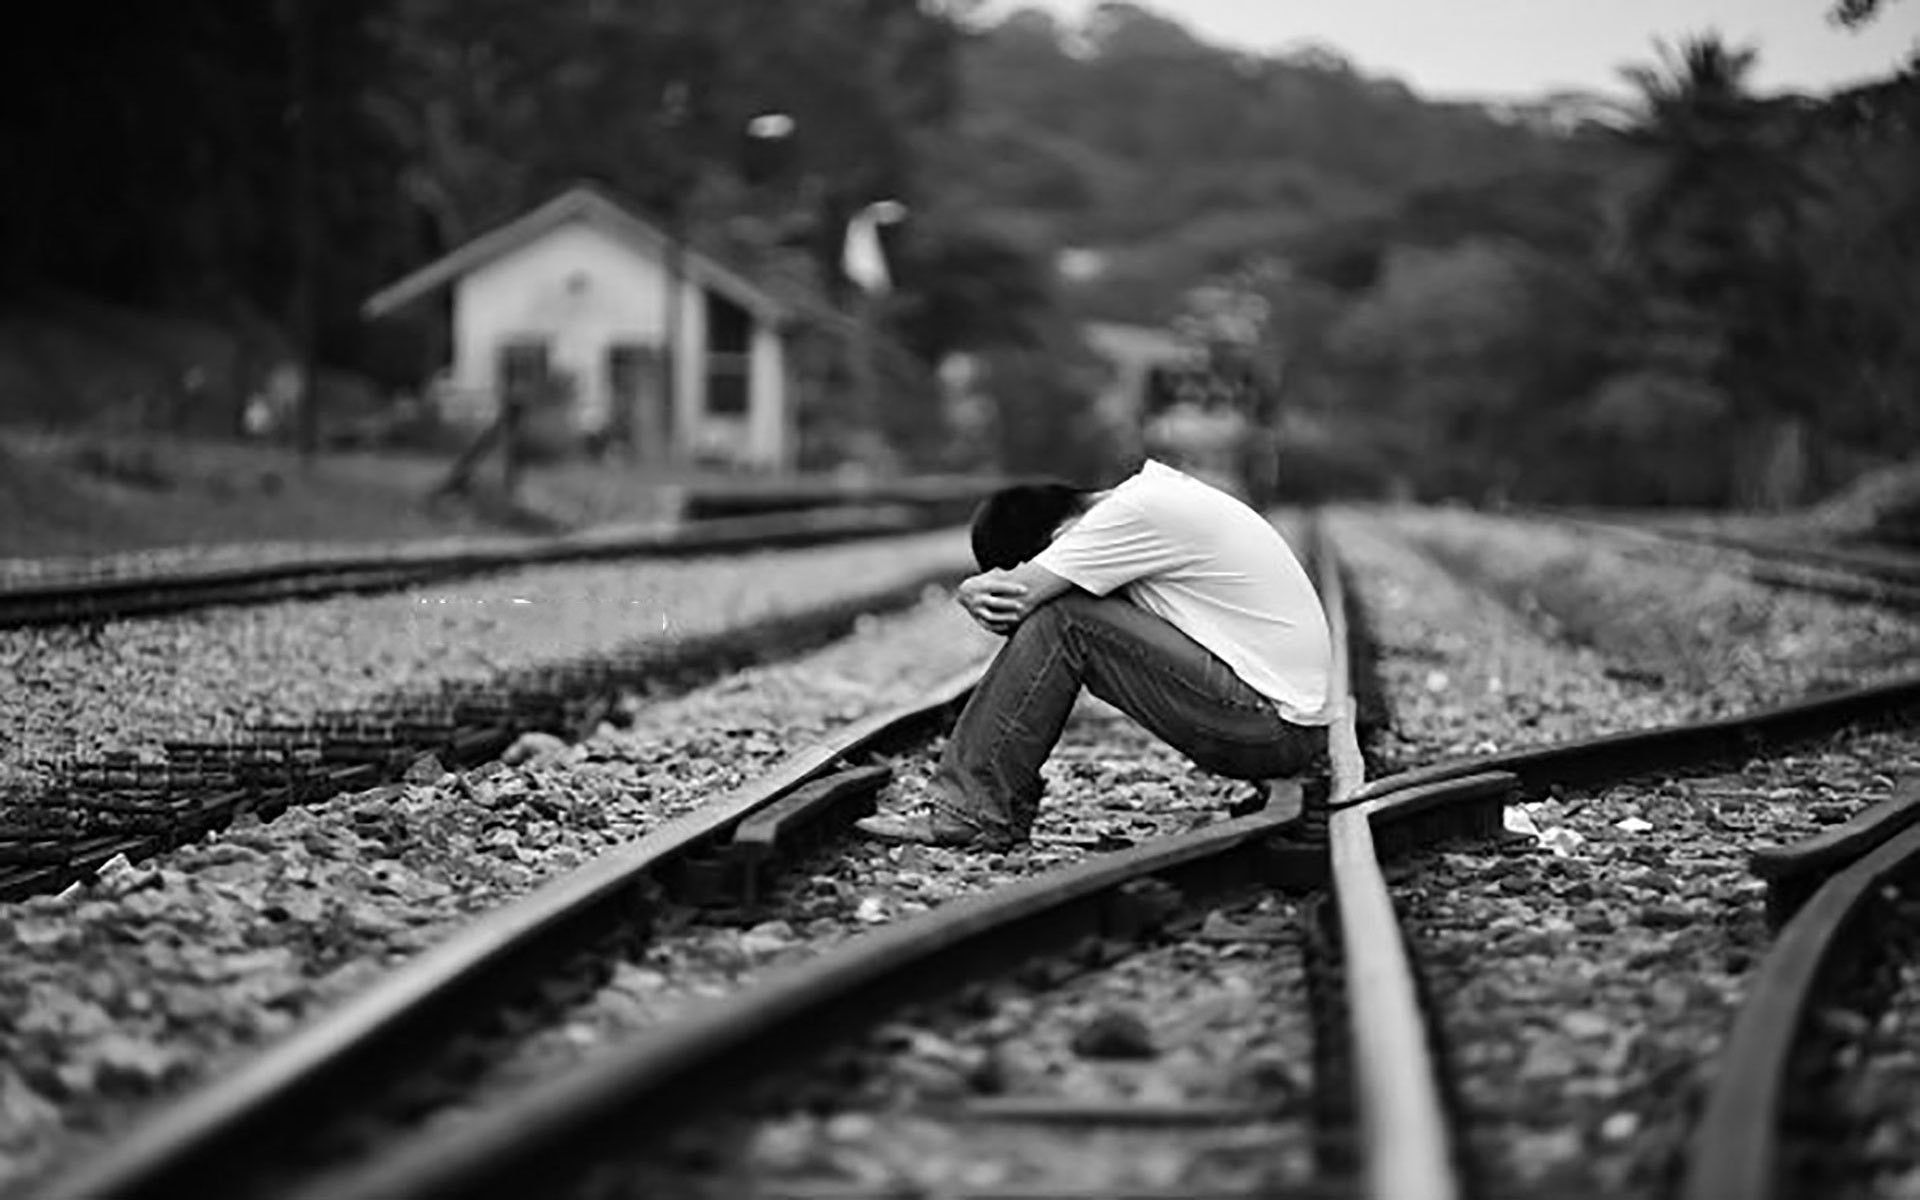 1920x1200 sad boy images are another popular wallpaper among broken hearten boys just like sad